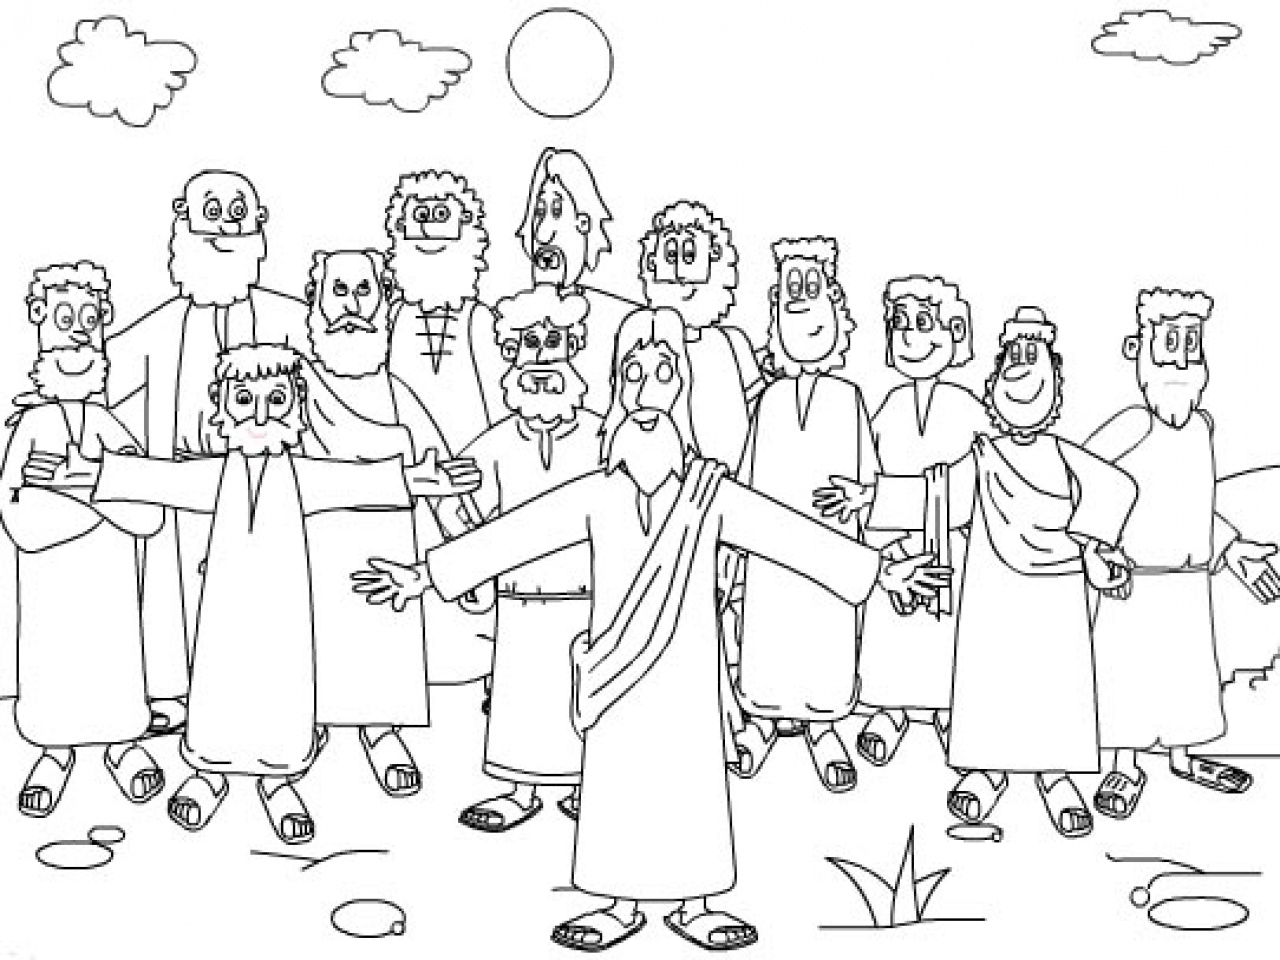 It's just an image of Old Fashioned Jesus And Disciples Coloring Page